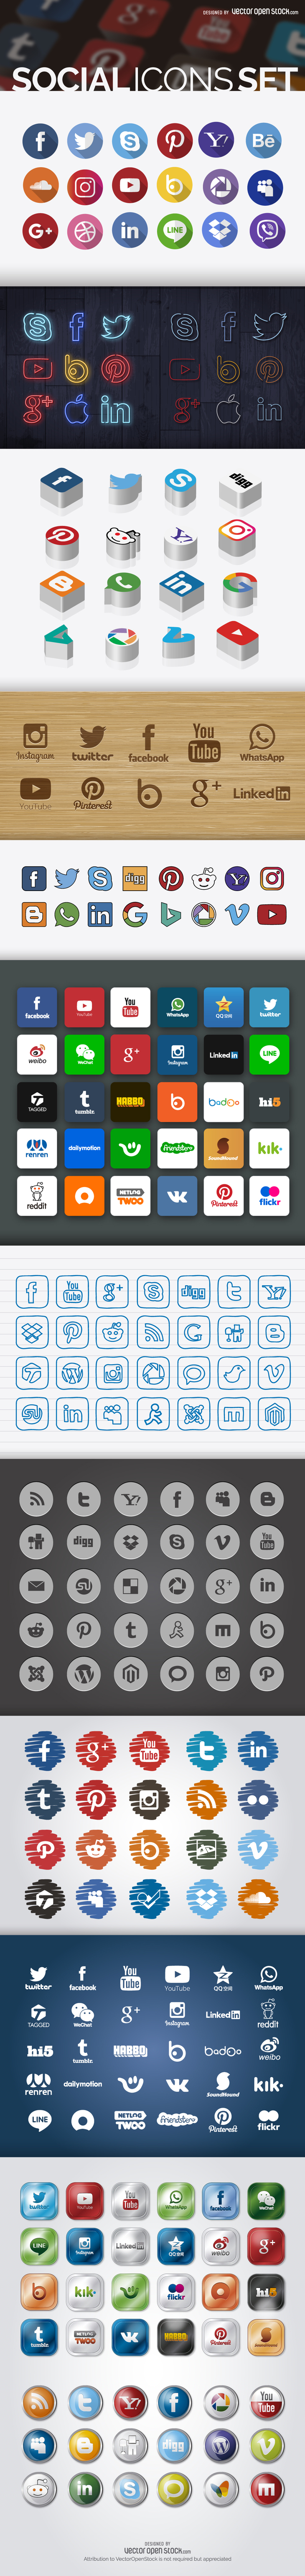 260 Free Social Icons Set In Different Styles preview